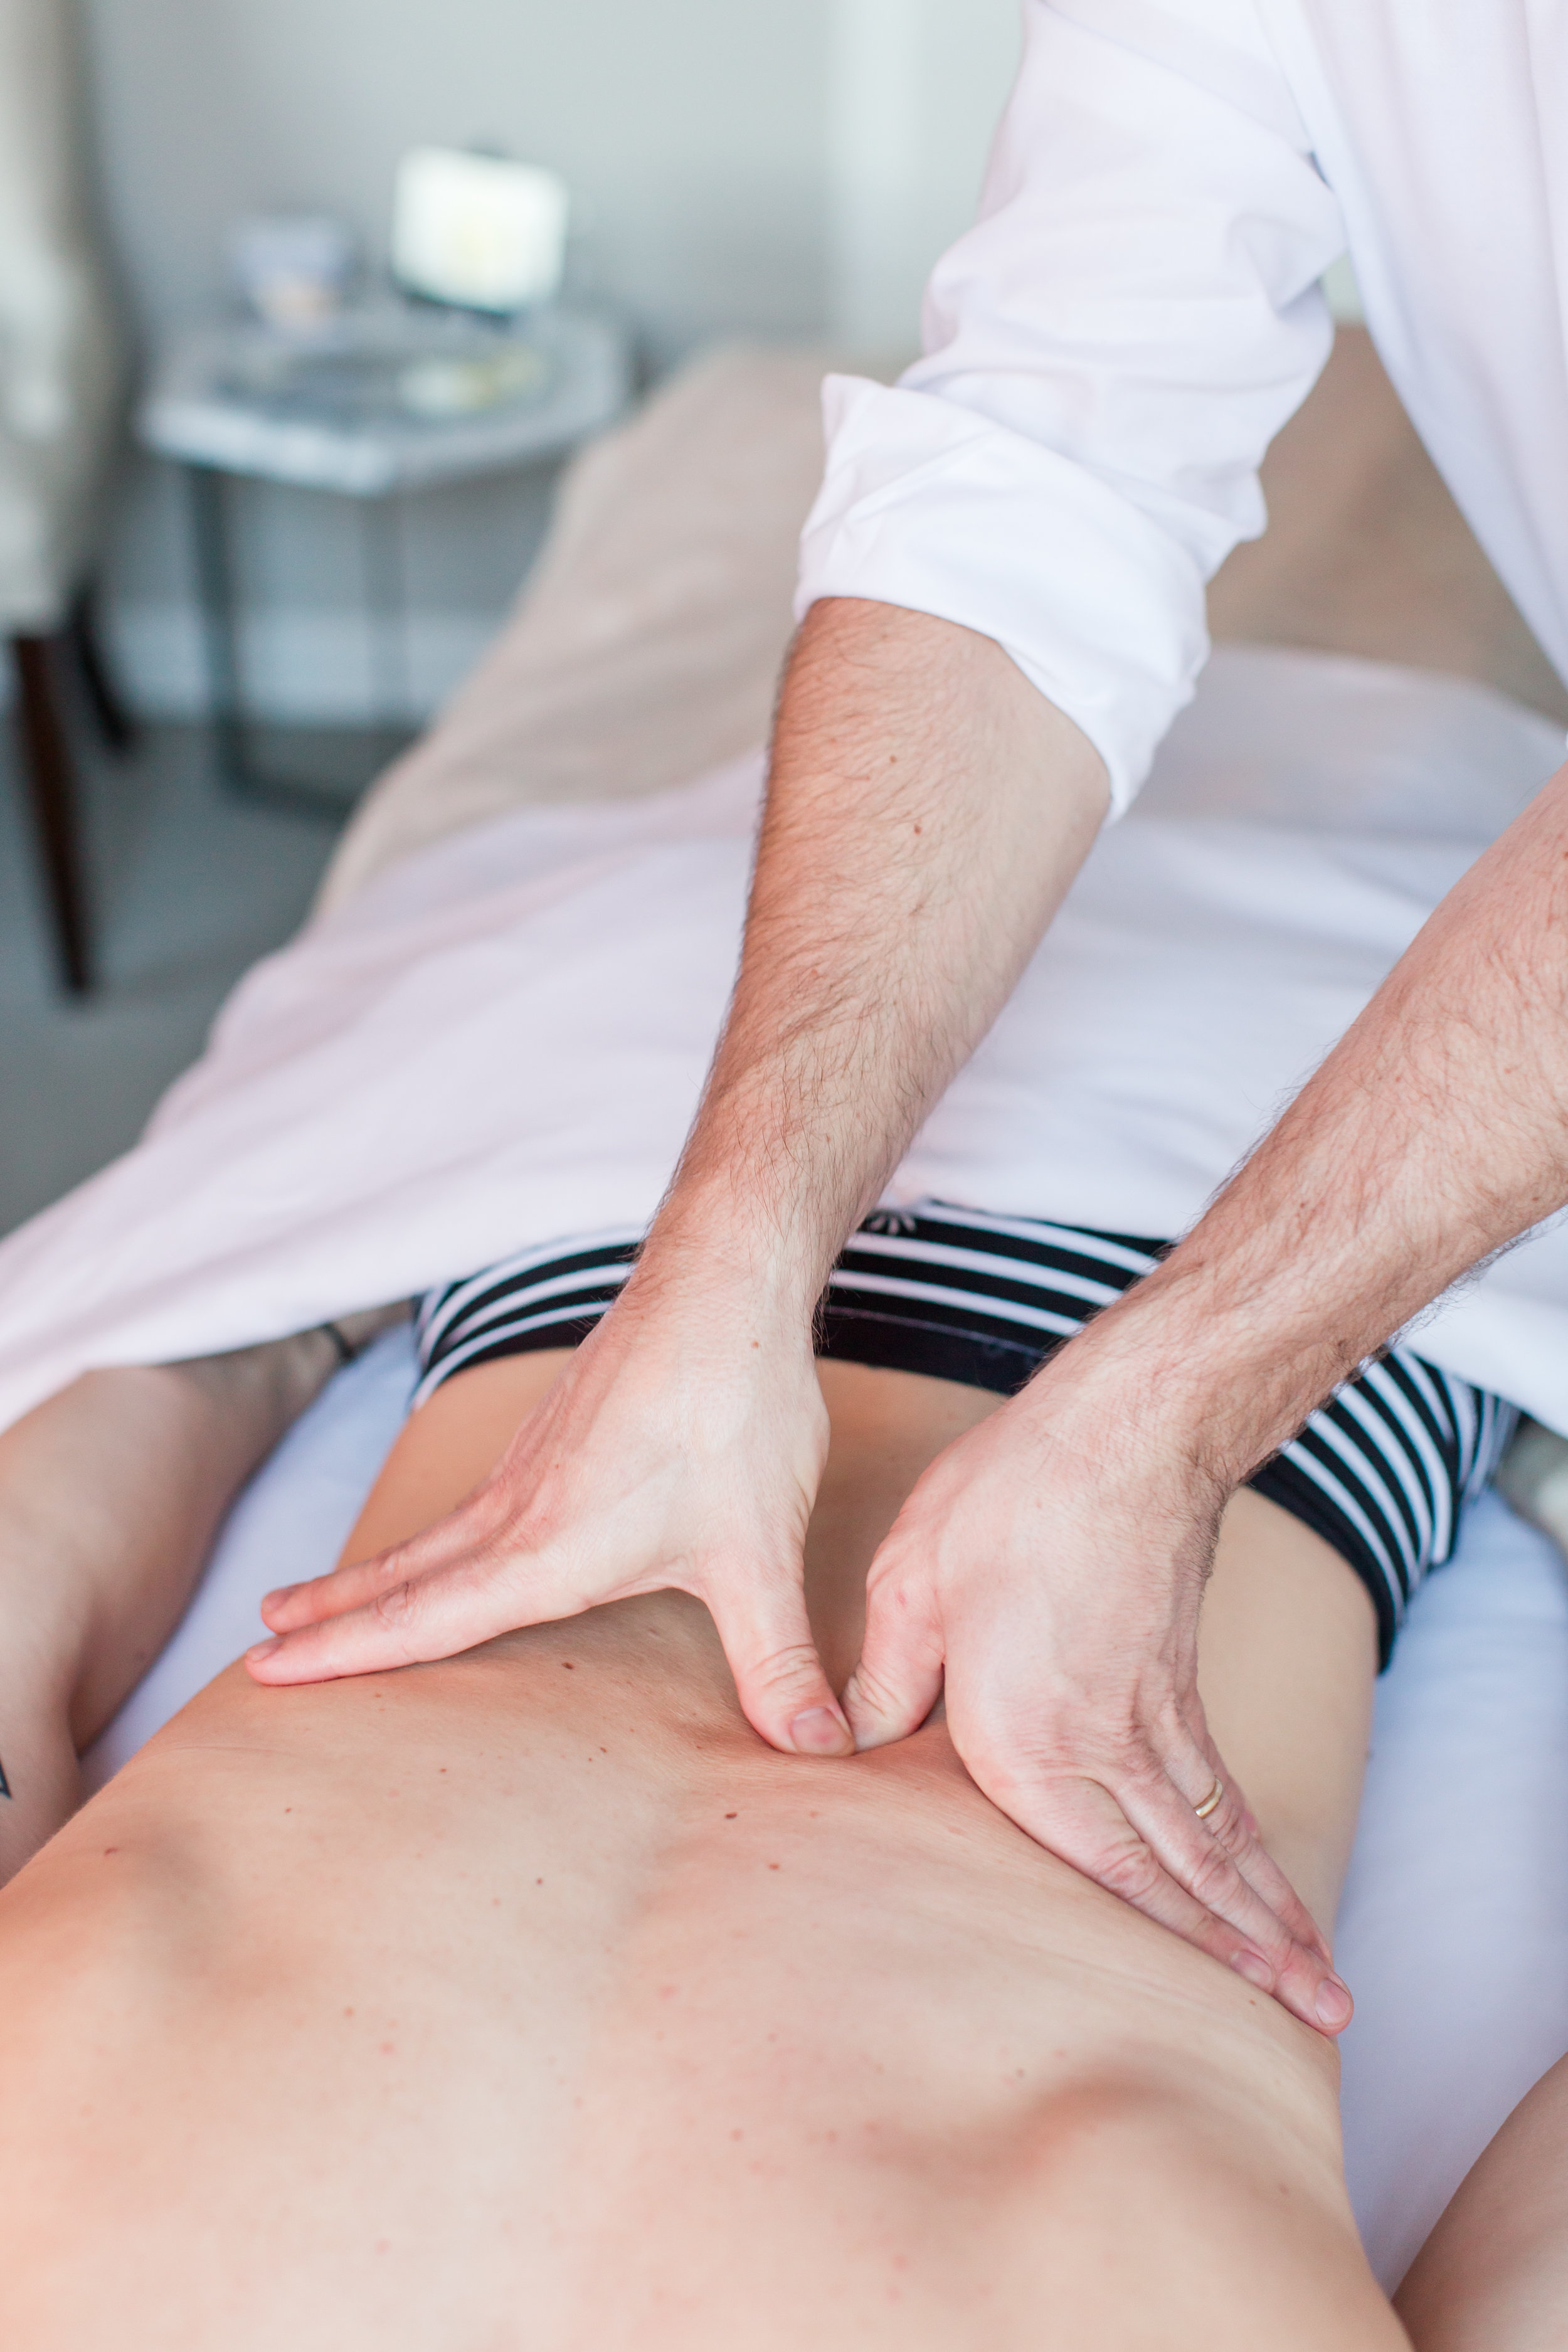 Authentic BodyTherapy touch